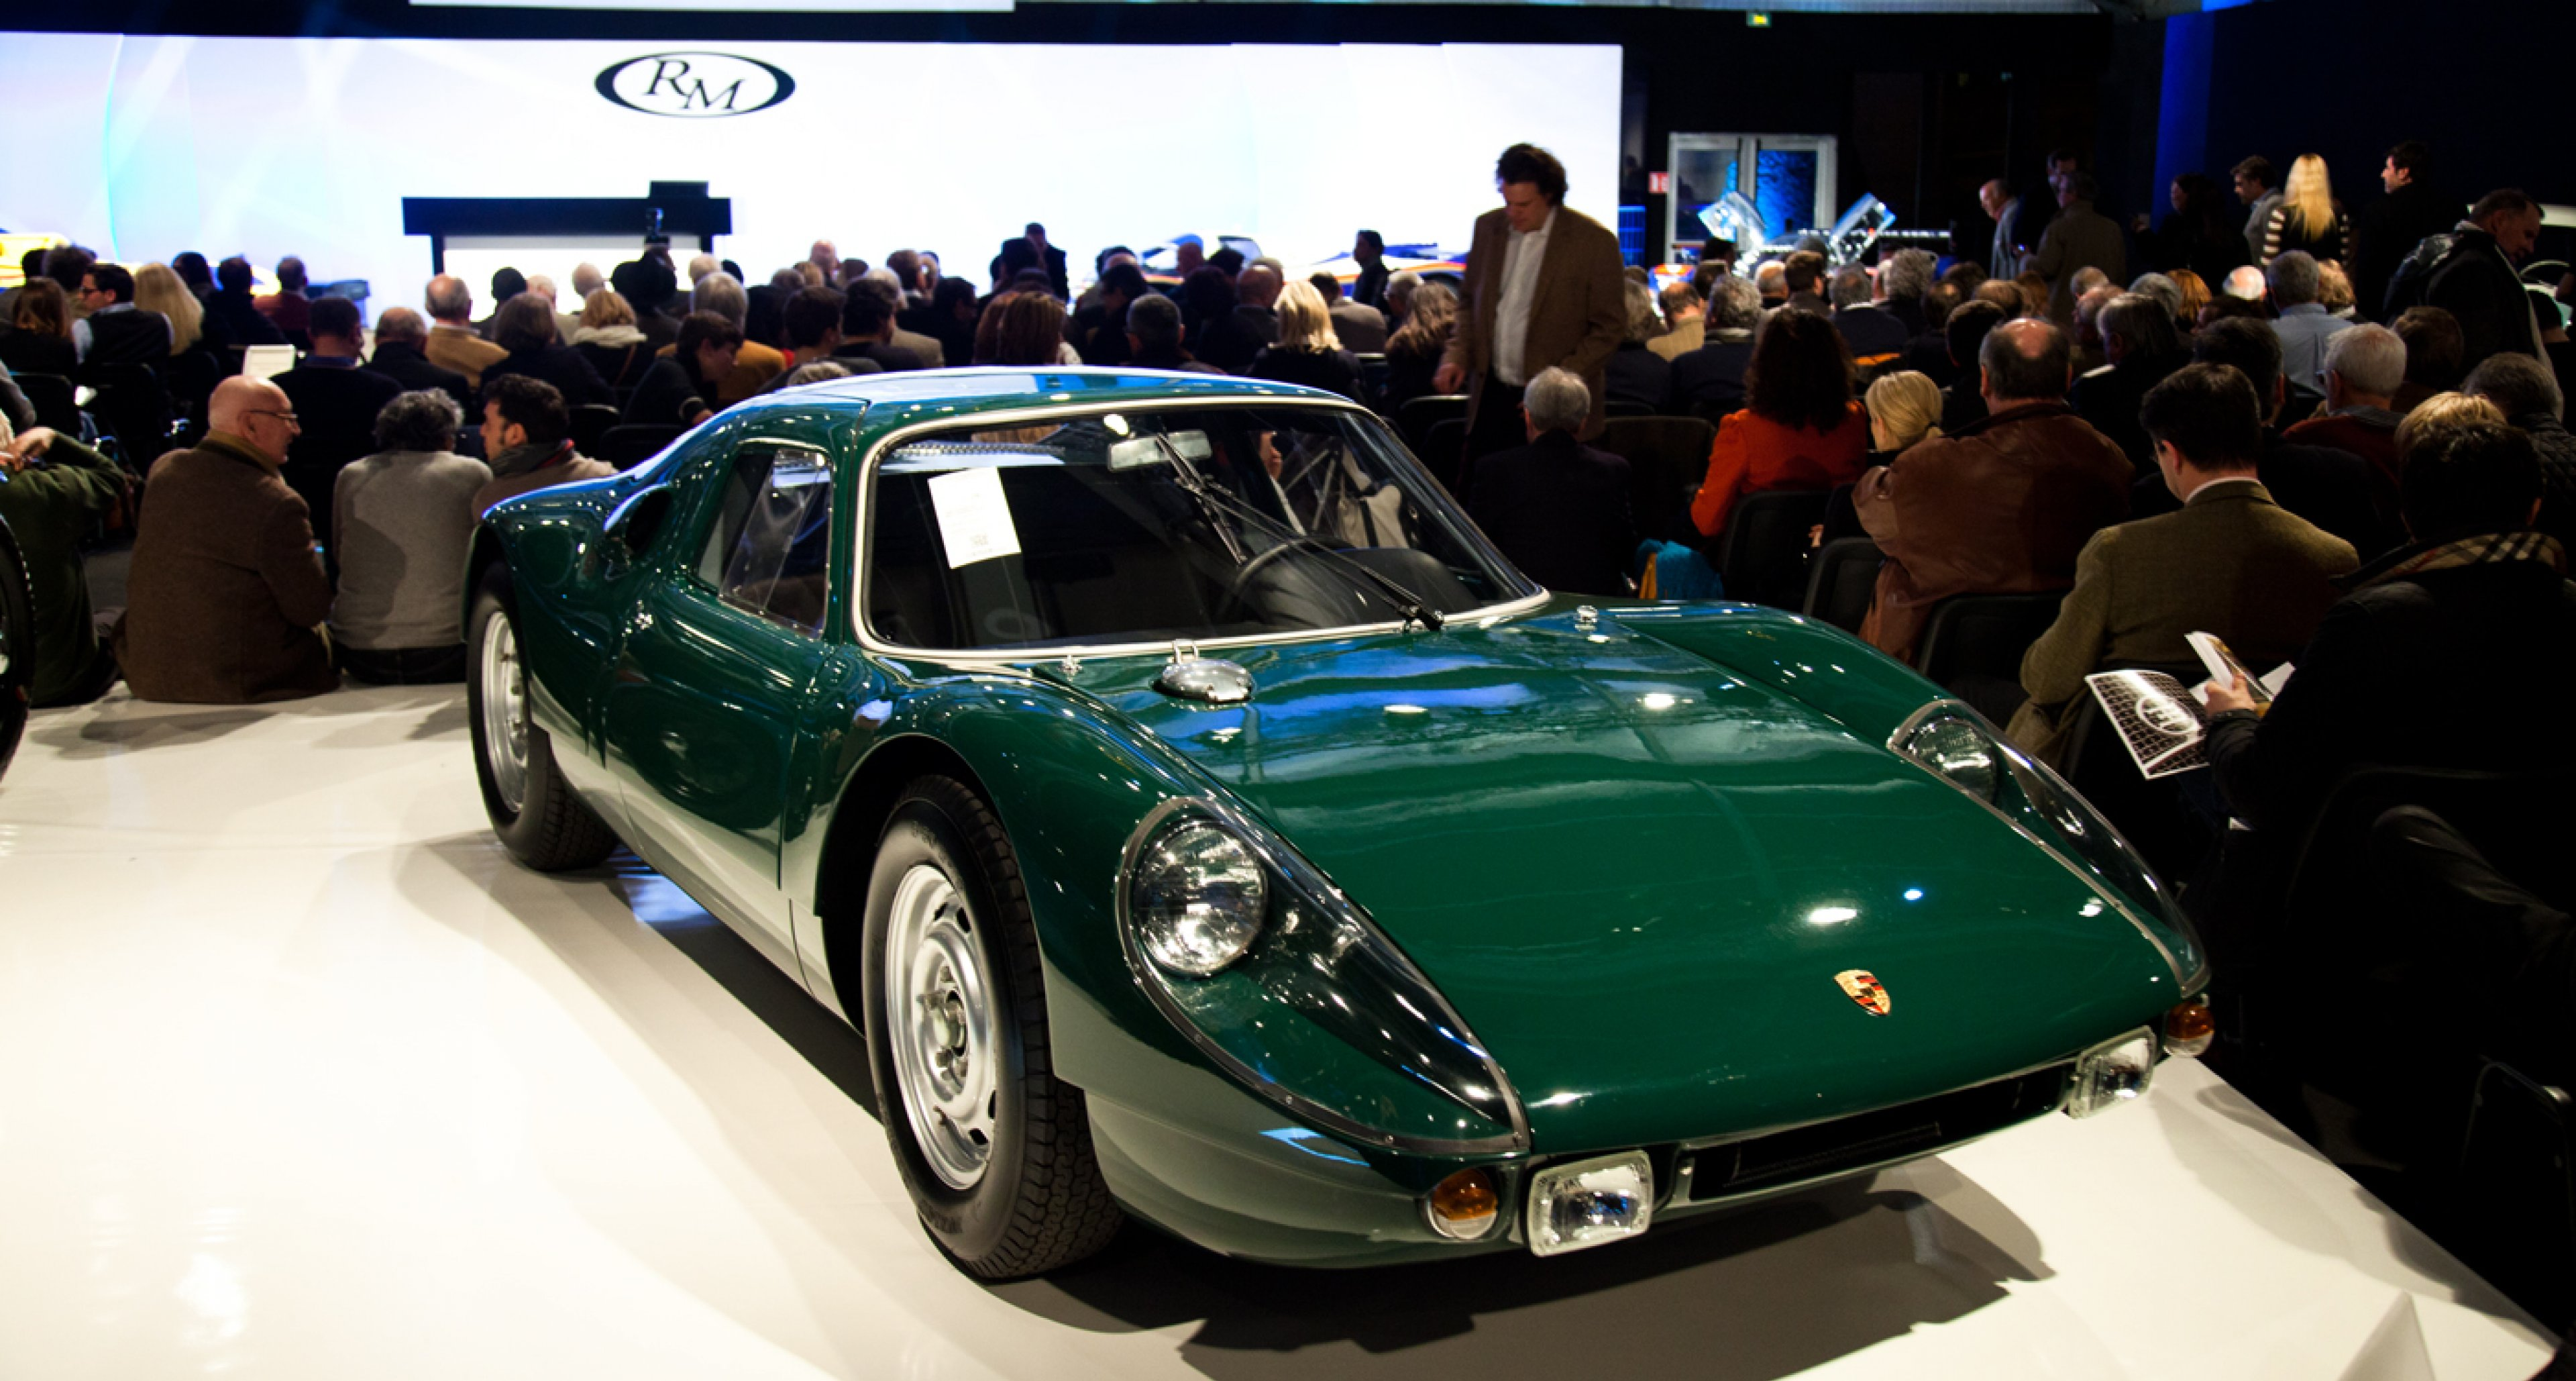 Porsche 904 Carrera GTS (sold for €1,288,000) at RM Auctions Retromobile sale 2014